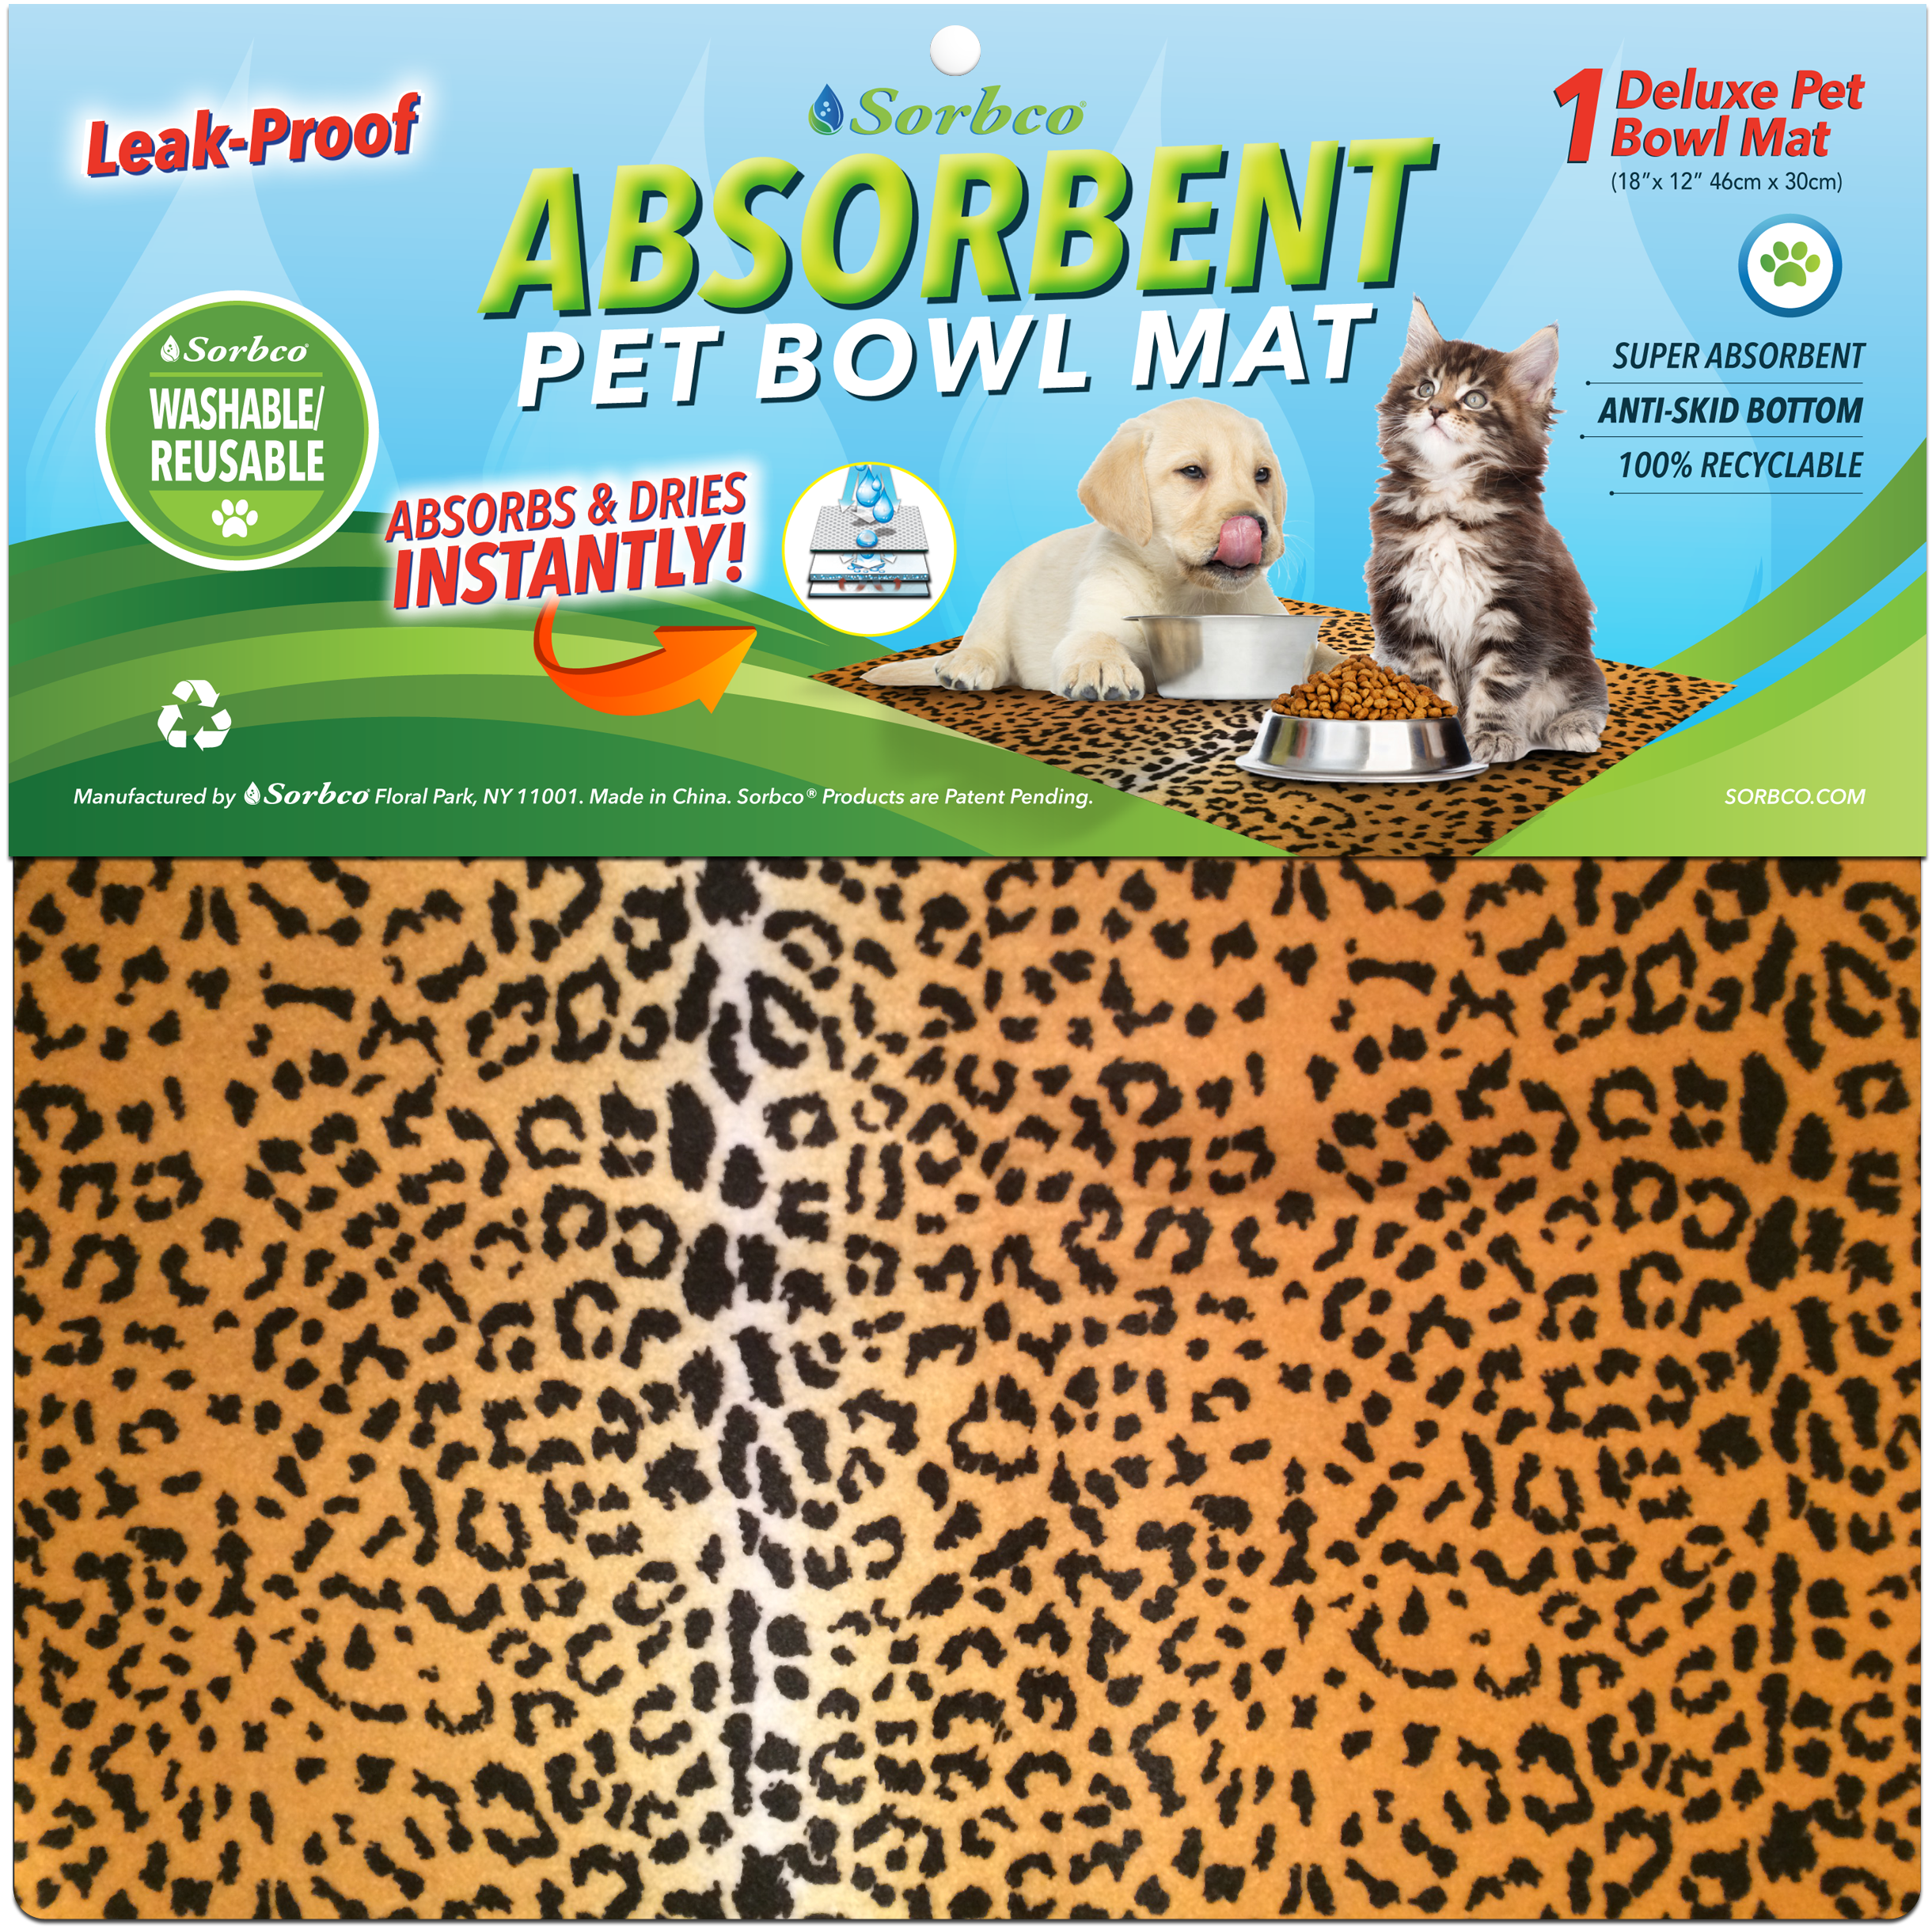 absorbent food non slip image material dinner mate dog water cat mat mats bowl pet amp